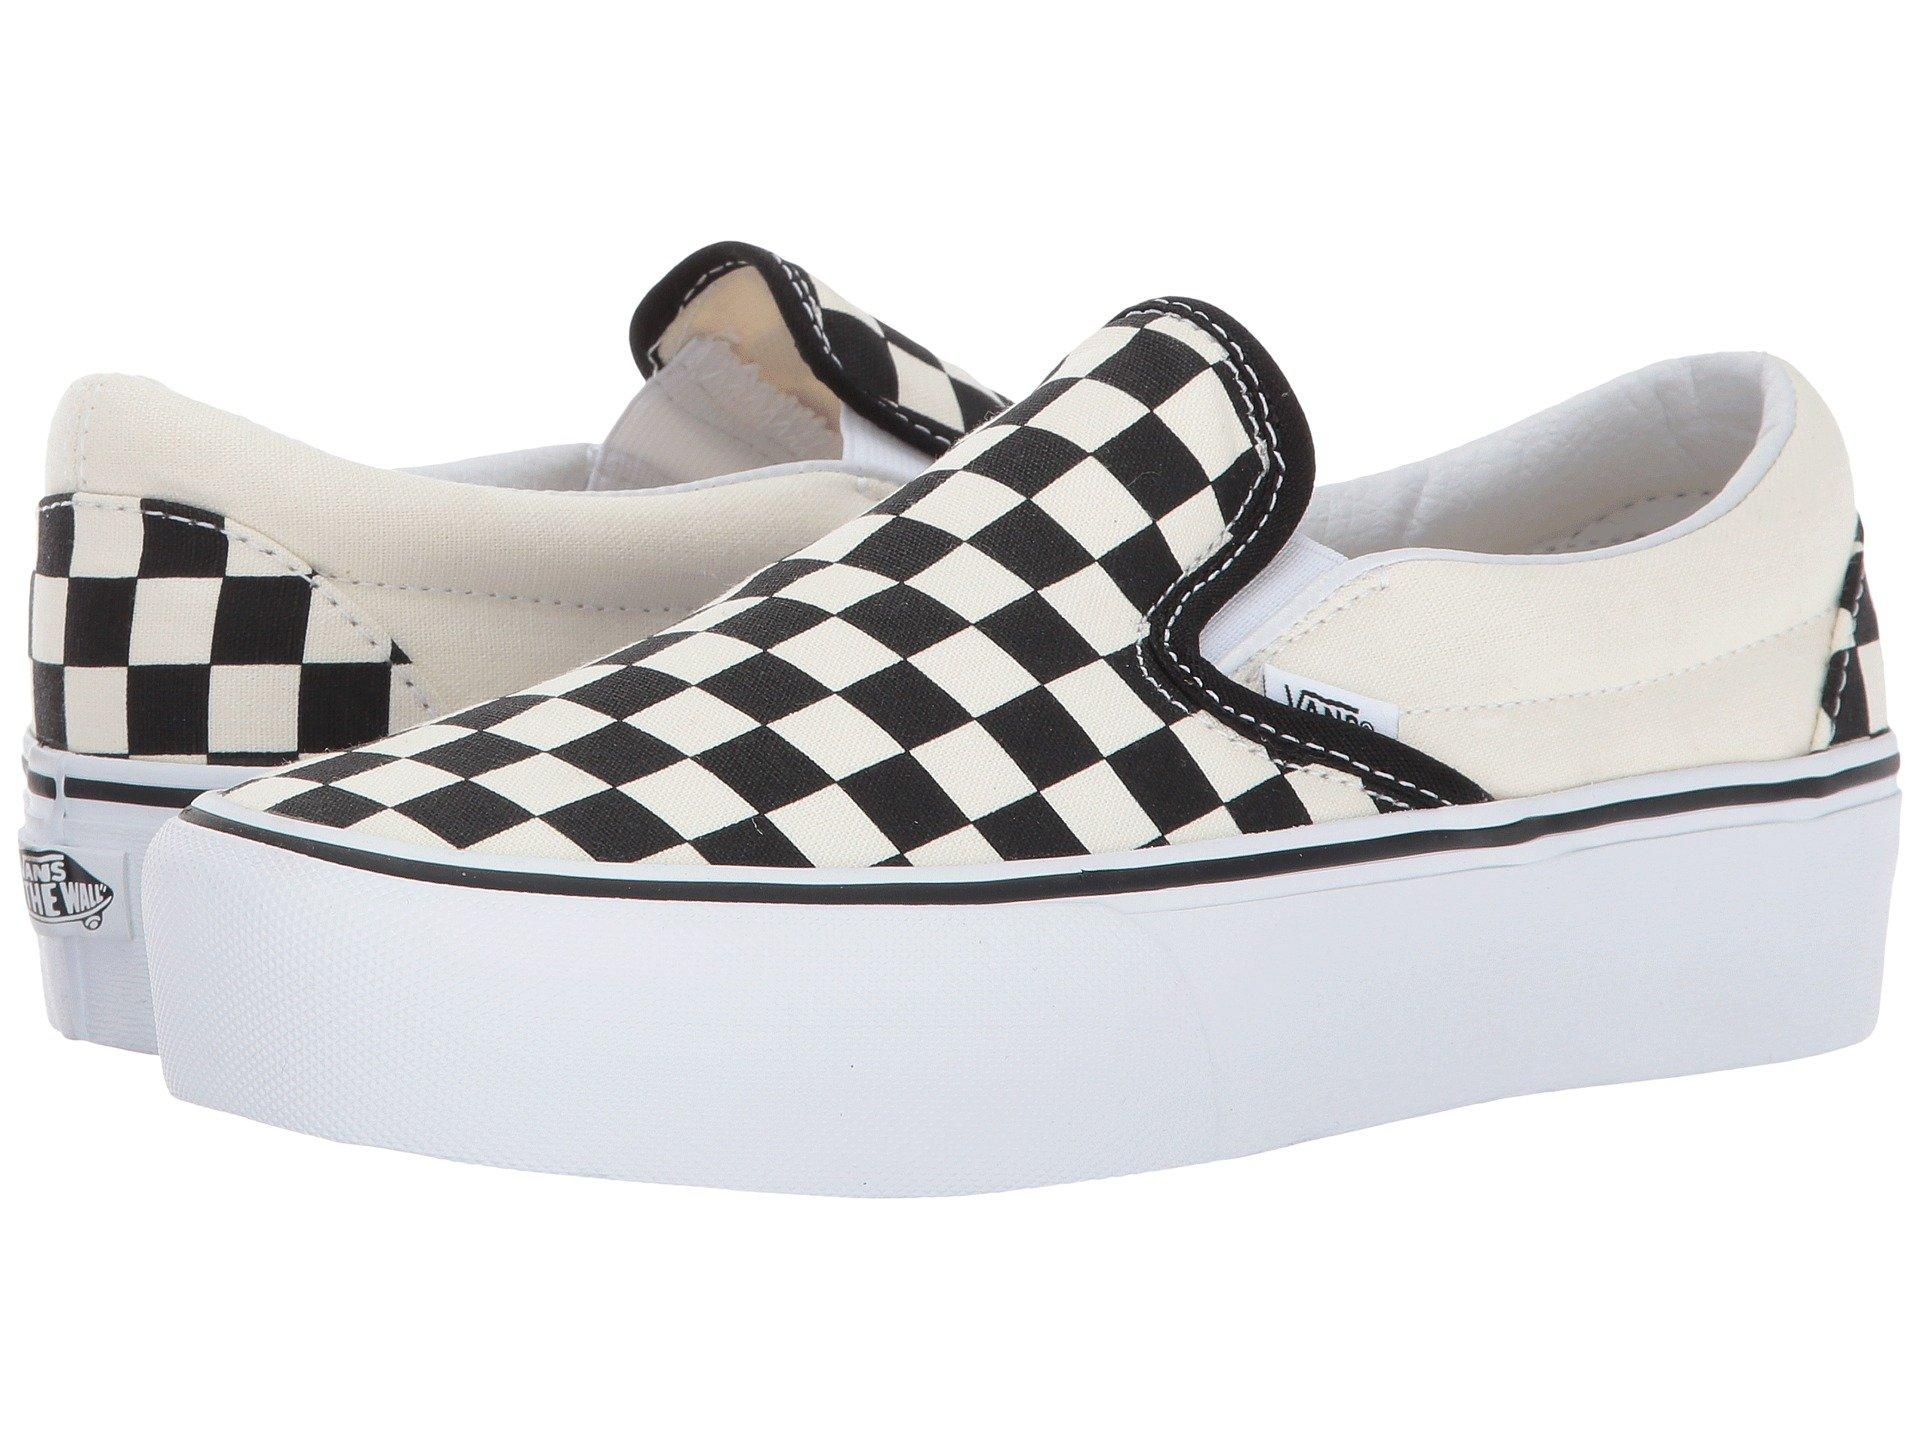 07c9aeff484 Lyst - Vans Women s Checkerboard Slip-on Platform Sneakers in White ...